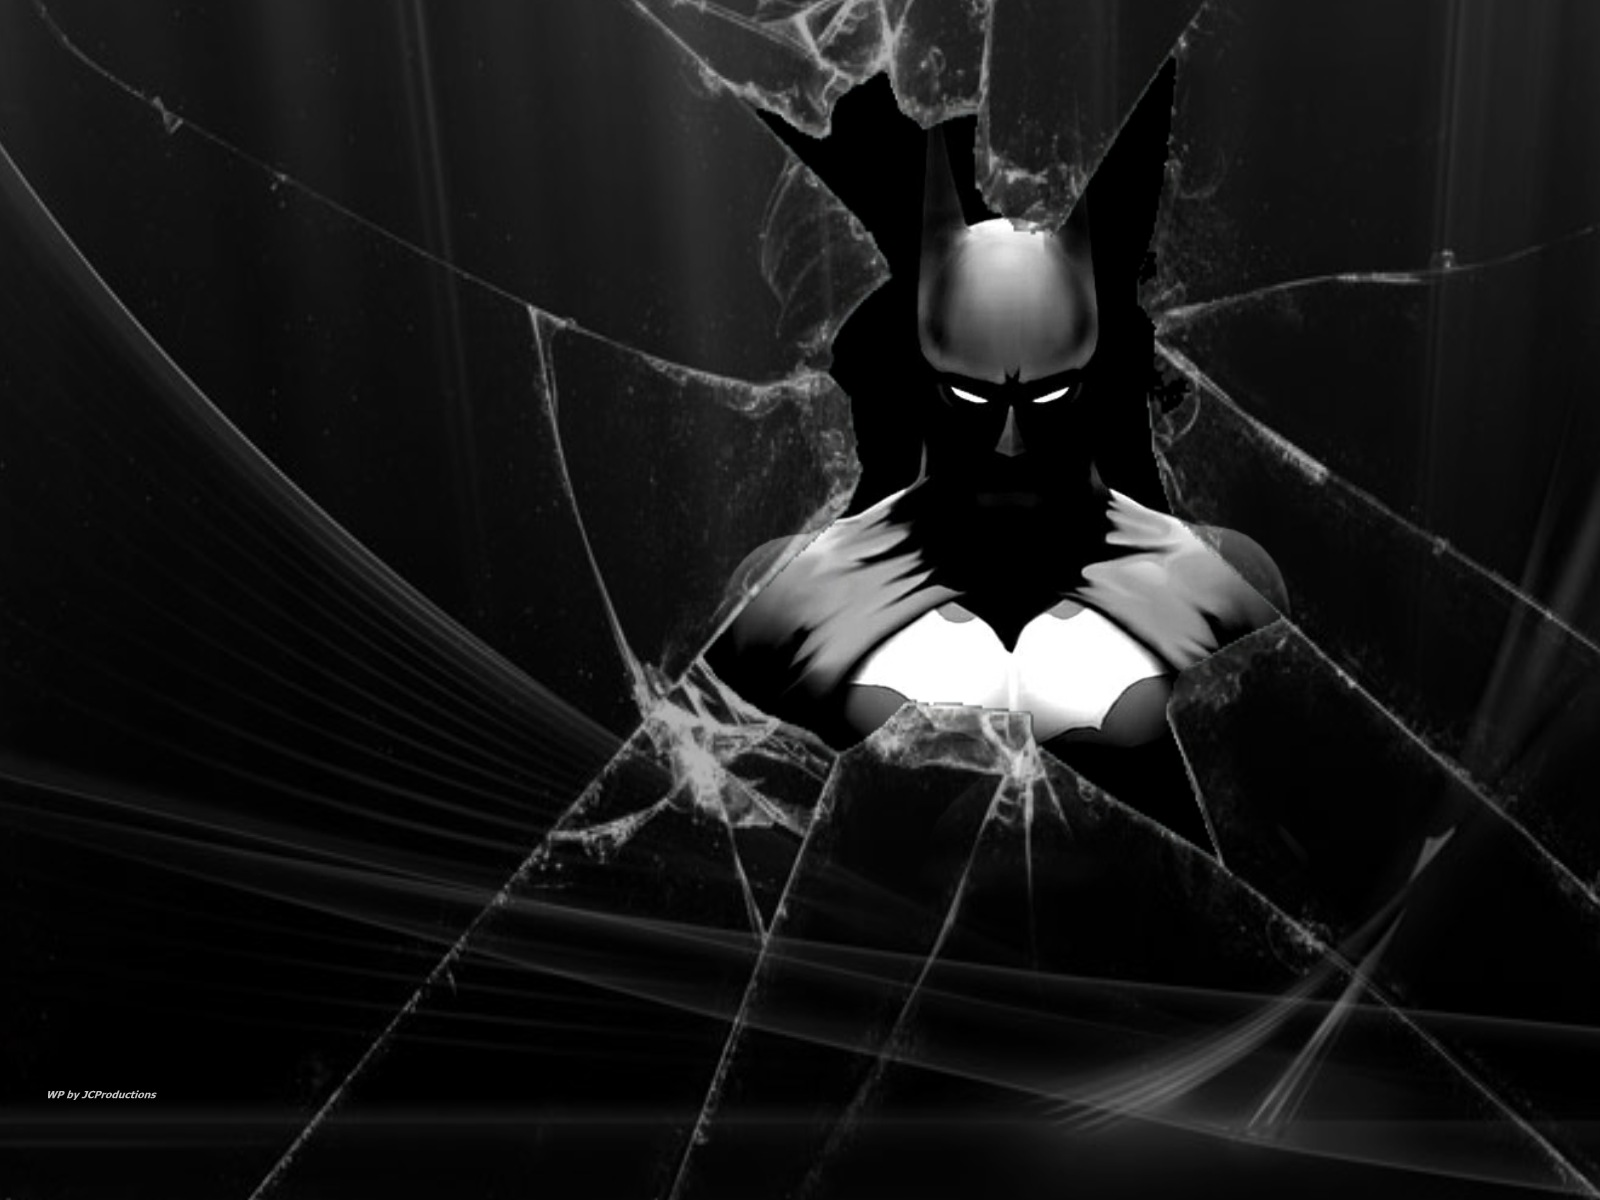 Batman images Batman wallpaper photos 27163409 1600x1200